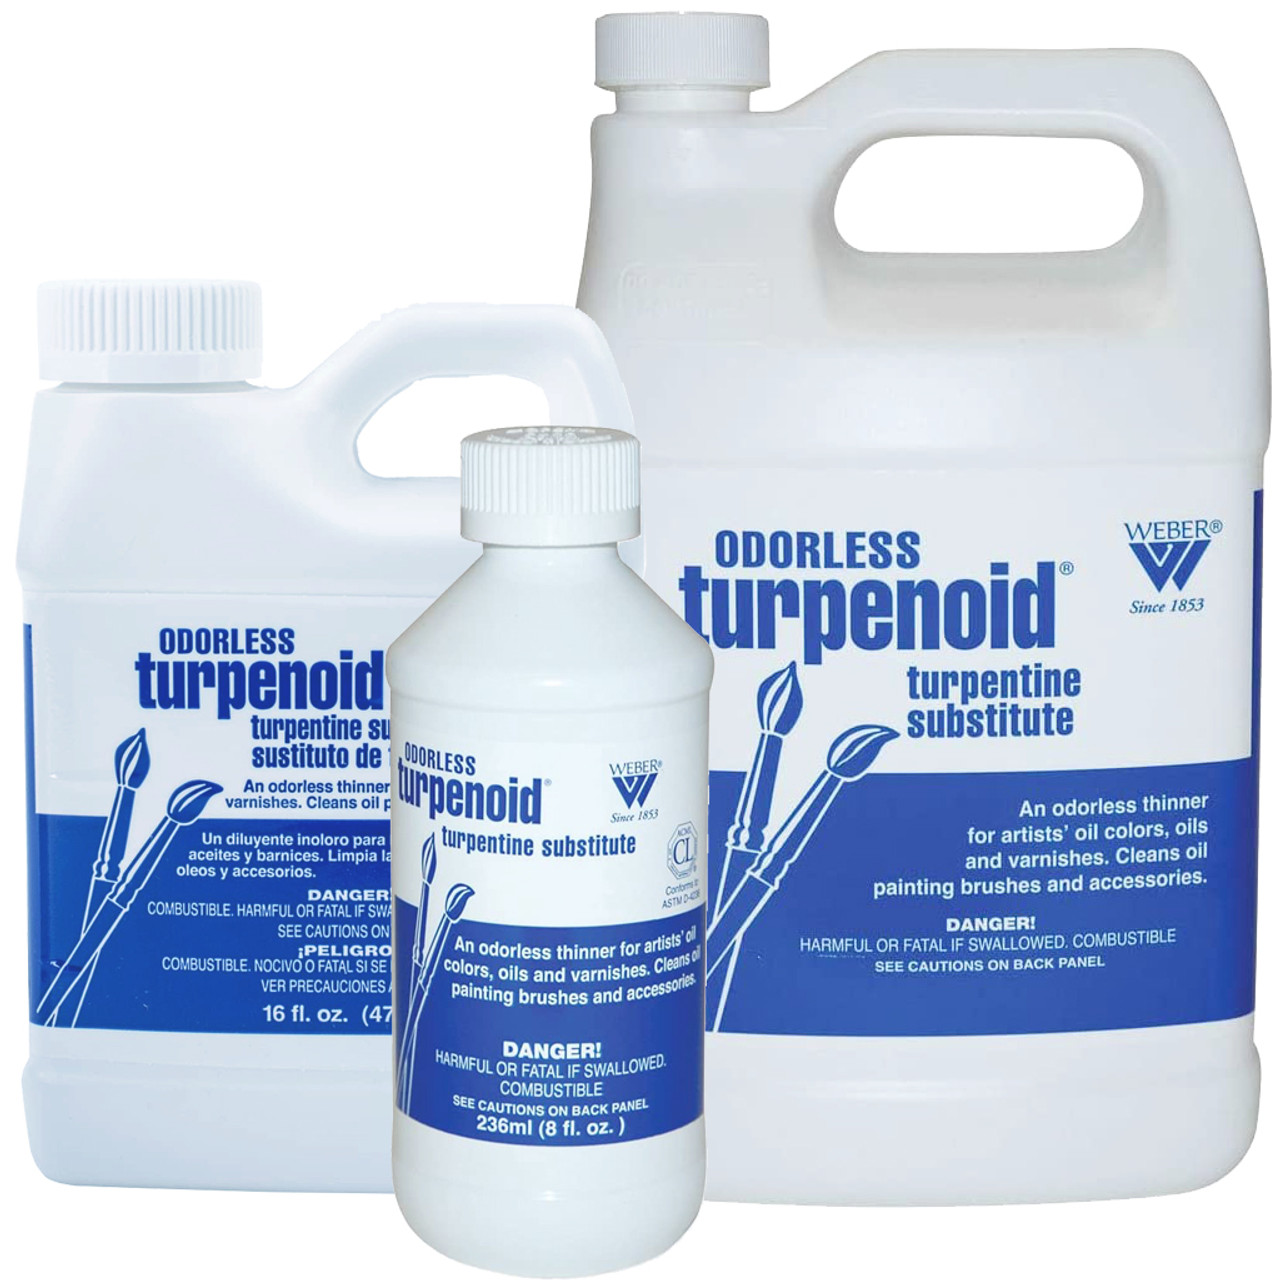 Martin F. Weber Odorless Turpenoid, sizes 8oz, 16oz, 32oz